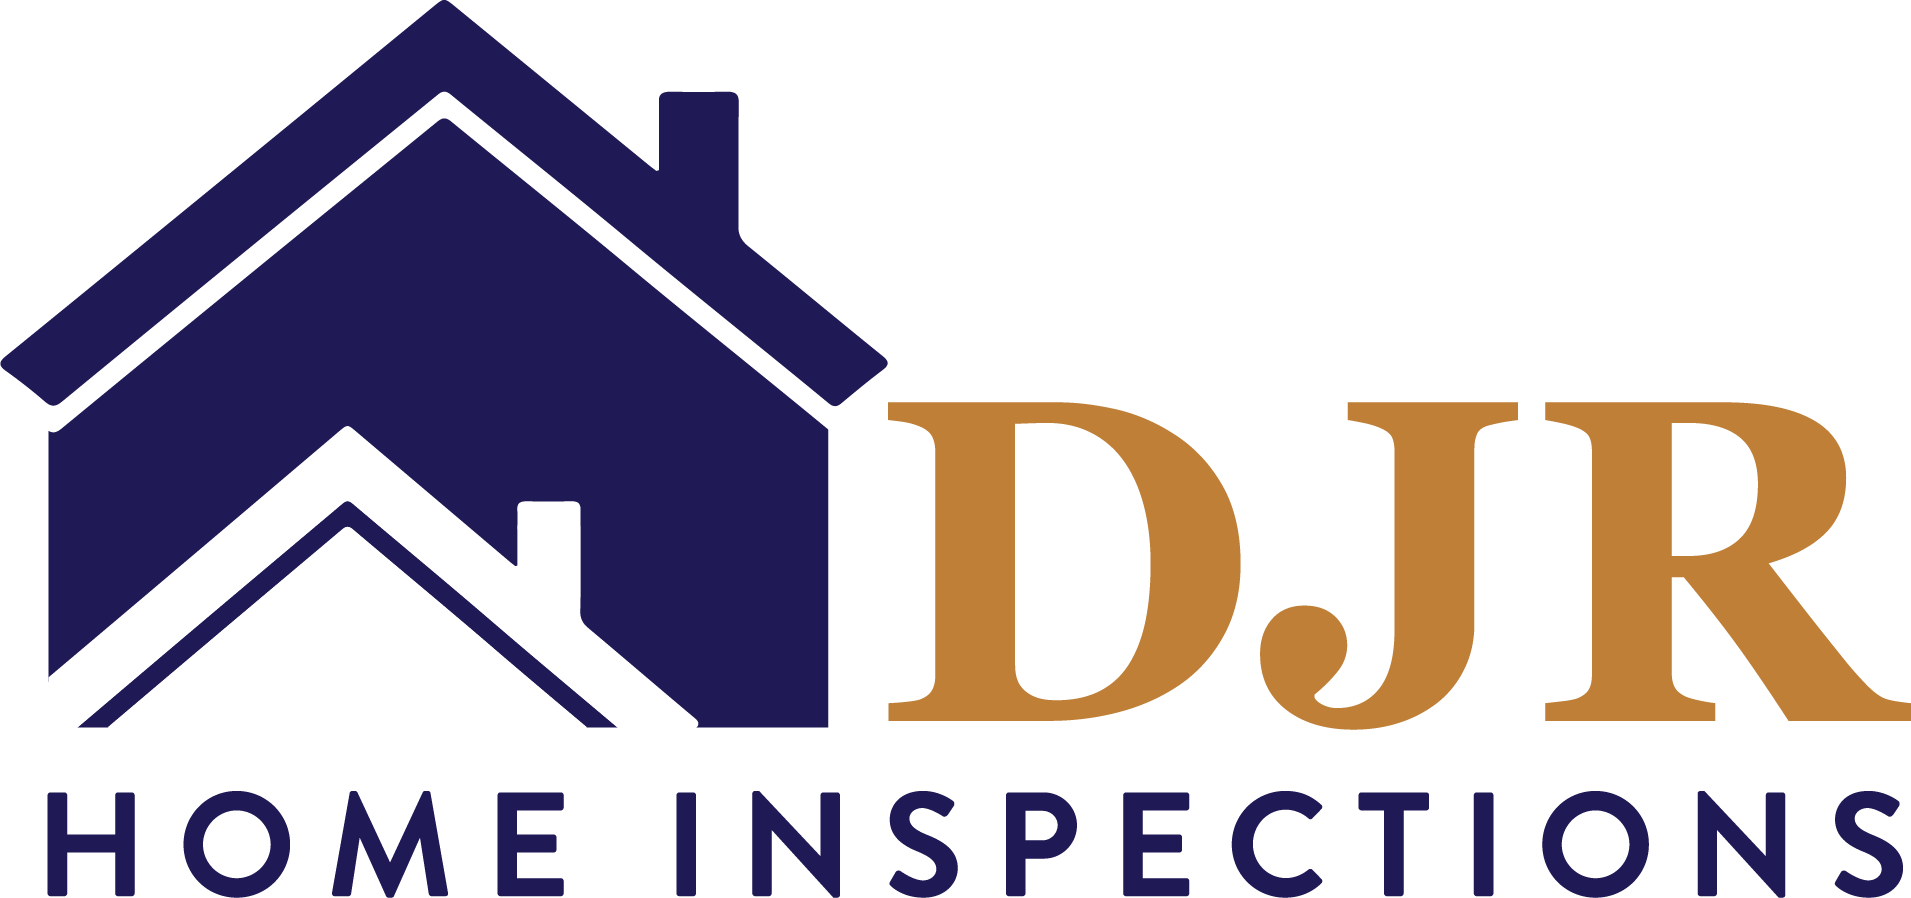 DJR Home Inspections Logo